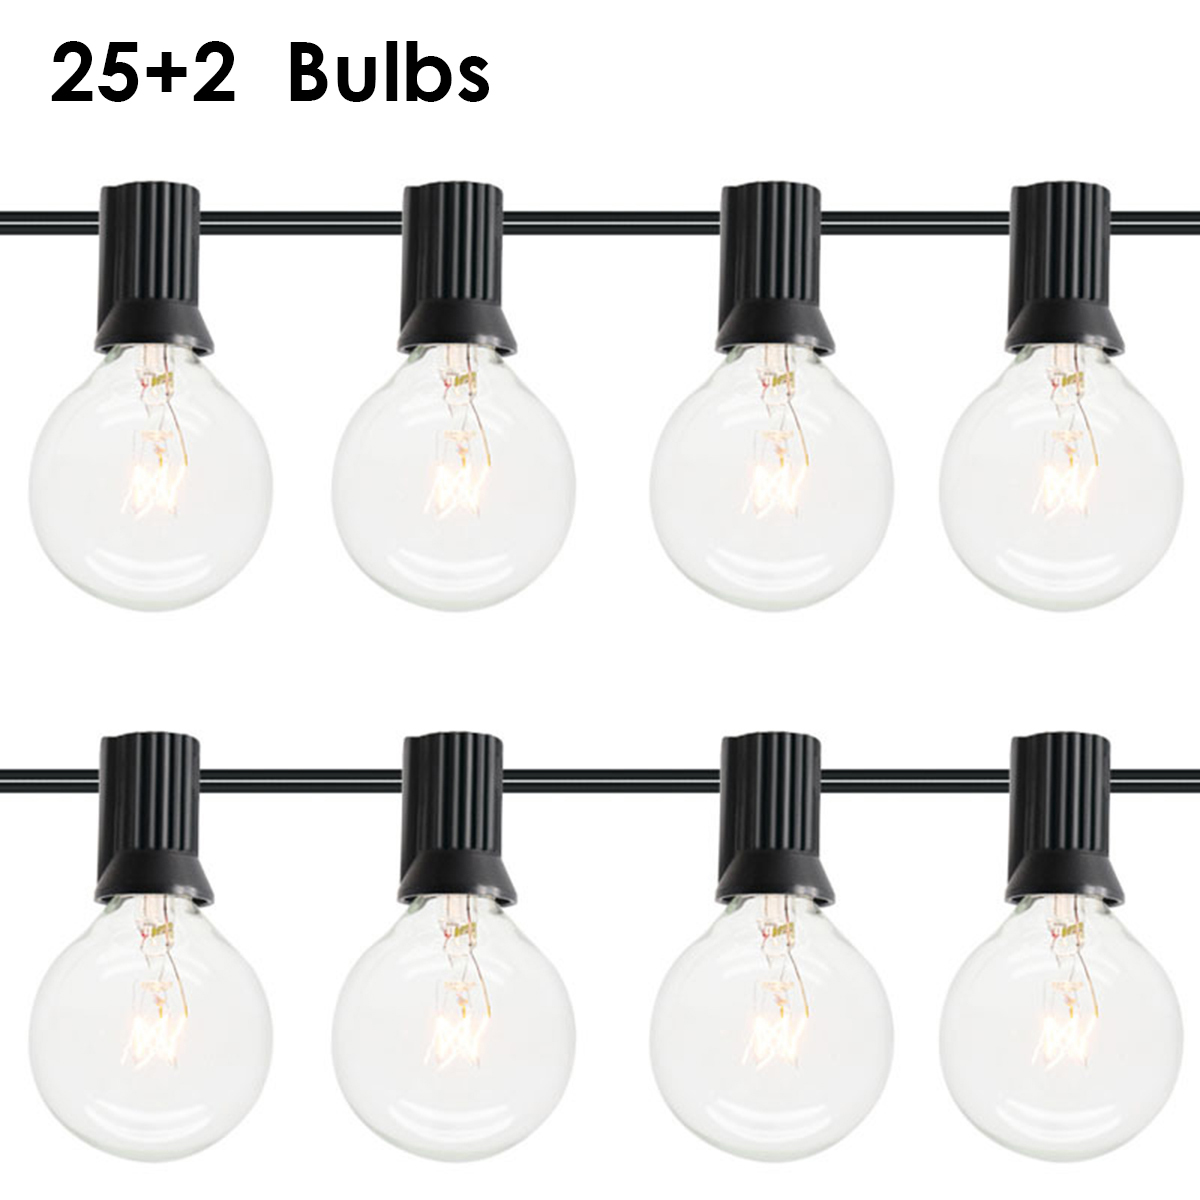 25ft LED Garden Lawn Lamp G40 Globe Bulbs Festoon String Light Plug-In Outdoor Garden Decor Light  Christmas Decoration